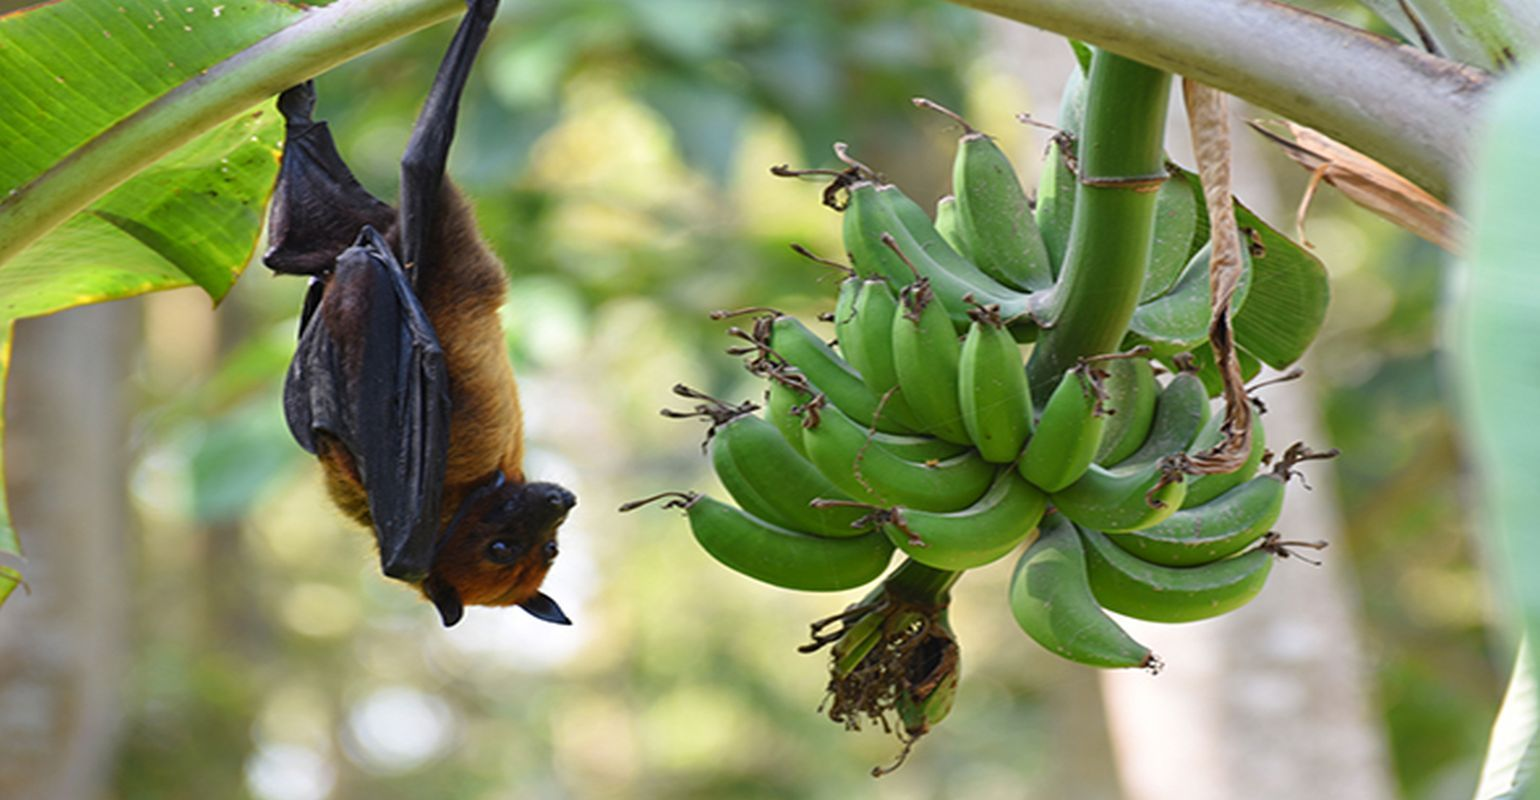 Model Predicts Bat Species With the Potential to Spread Nipah Virus in India